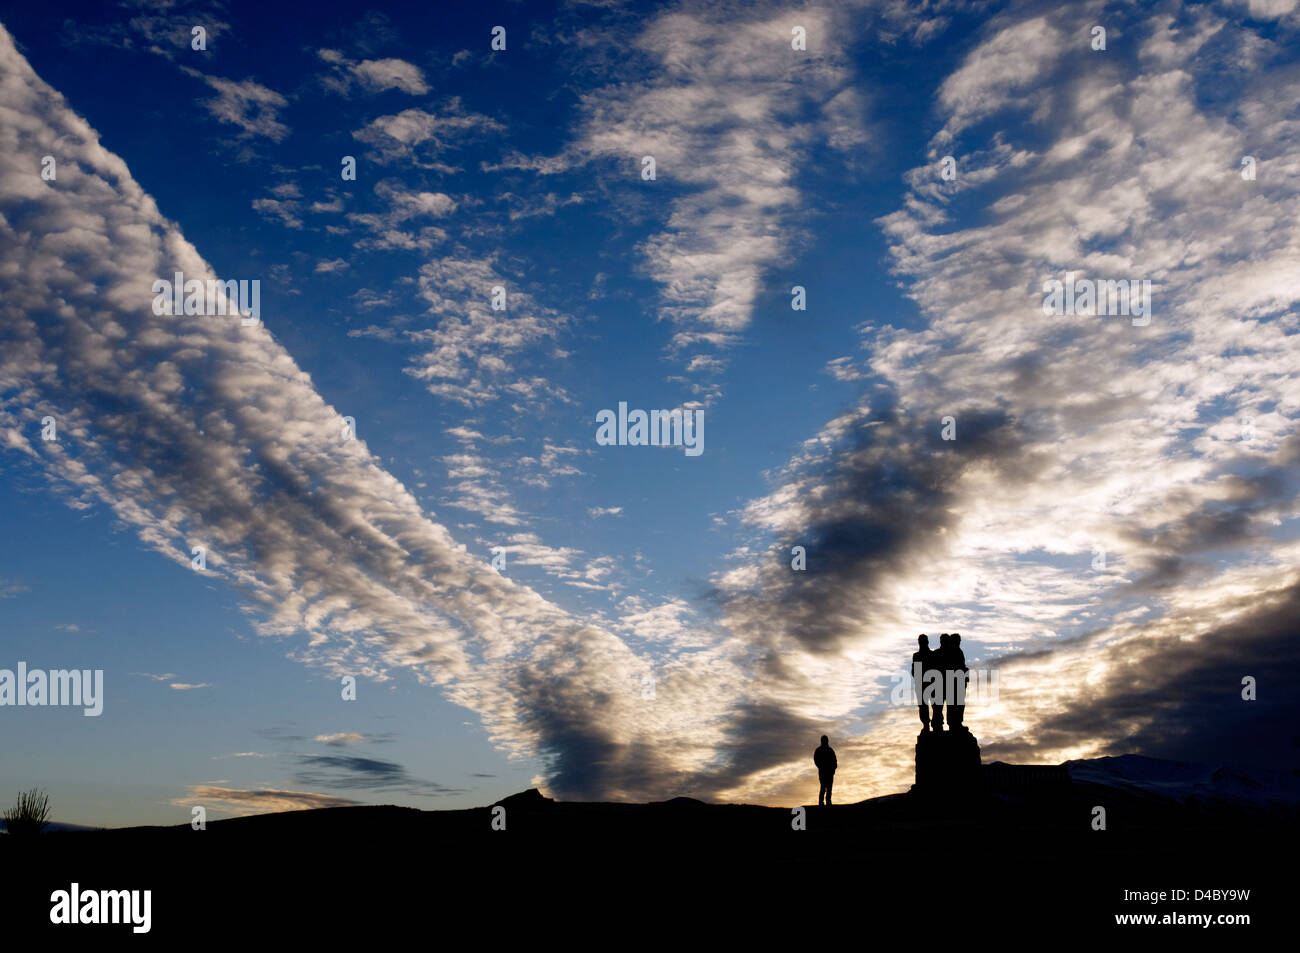 a-person-silhouetted-against-a-dramatic-sunrise-cloudscape-and-the-D4BY9W.jpg